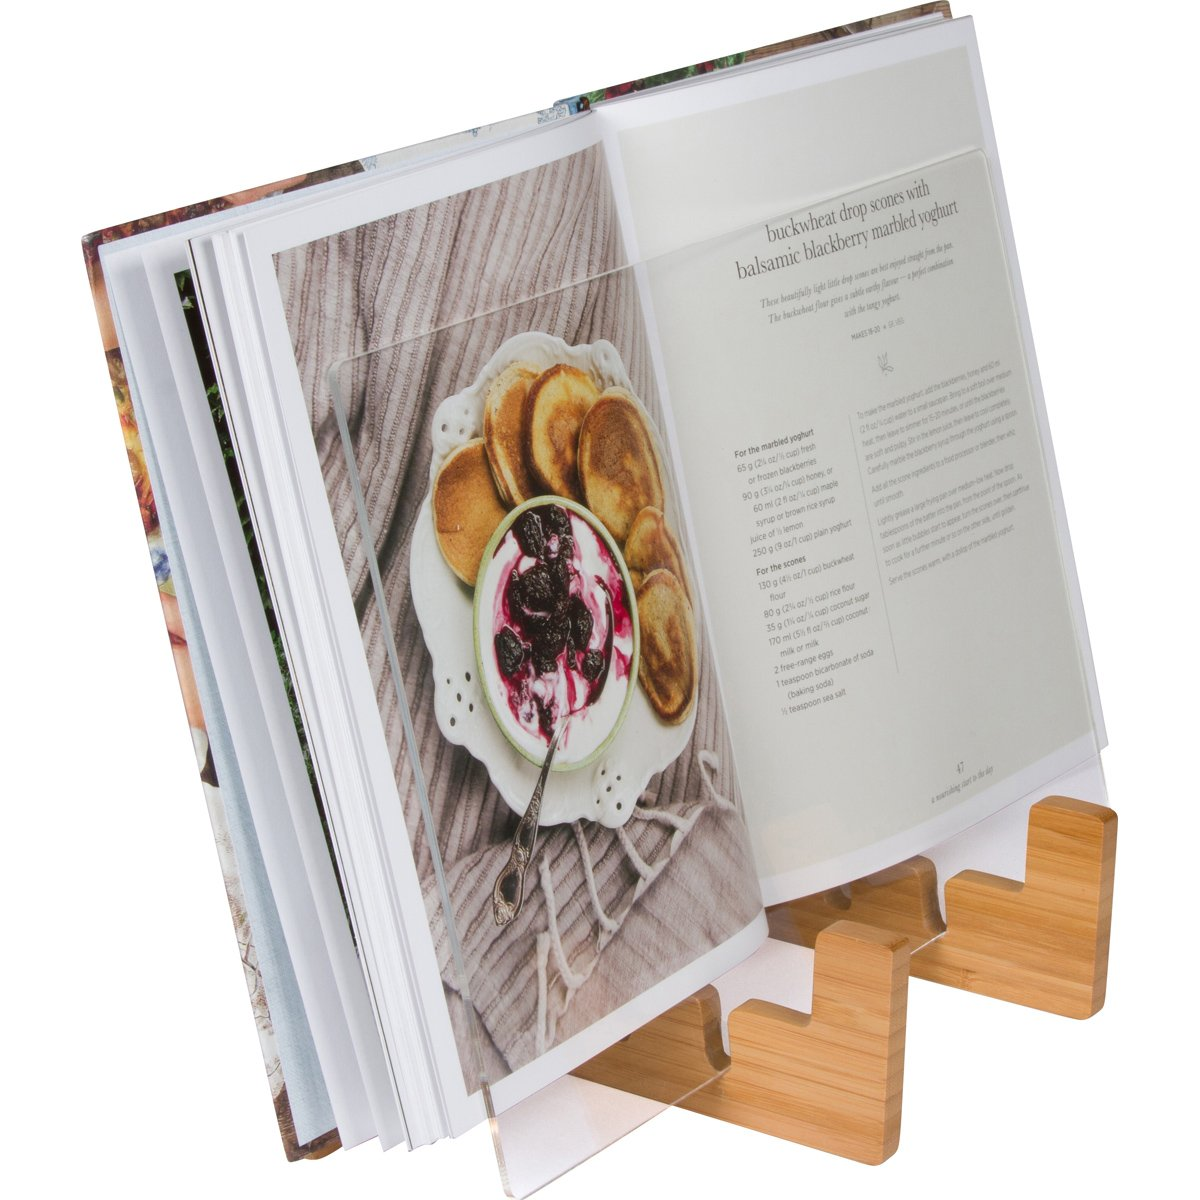 Cookbook Holder & Book Stand - 2-in-1 Kitchen Book Stand for Cookbooks or iPad Stand For Kitchen. Suitable for iPad and iPad mini, Surface & Other 7-12 Inch Tablets by KitchenWarePlus